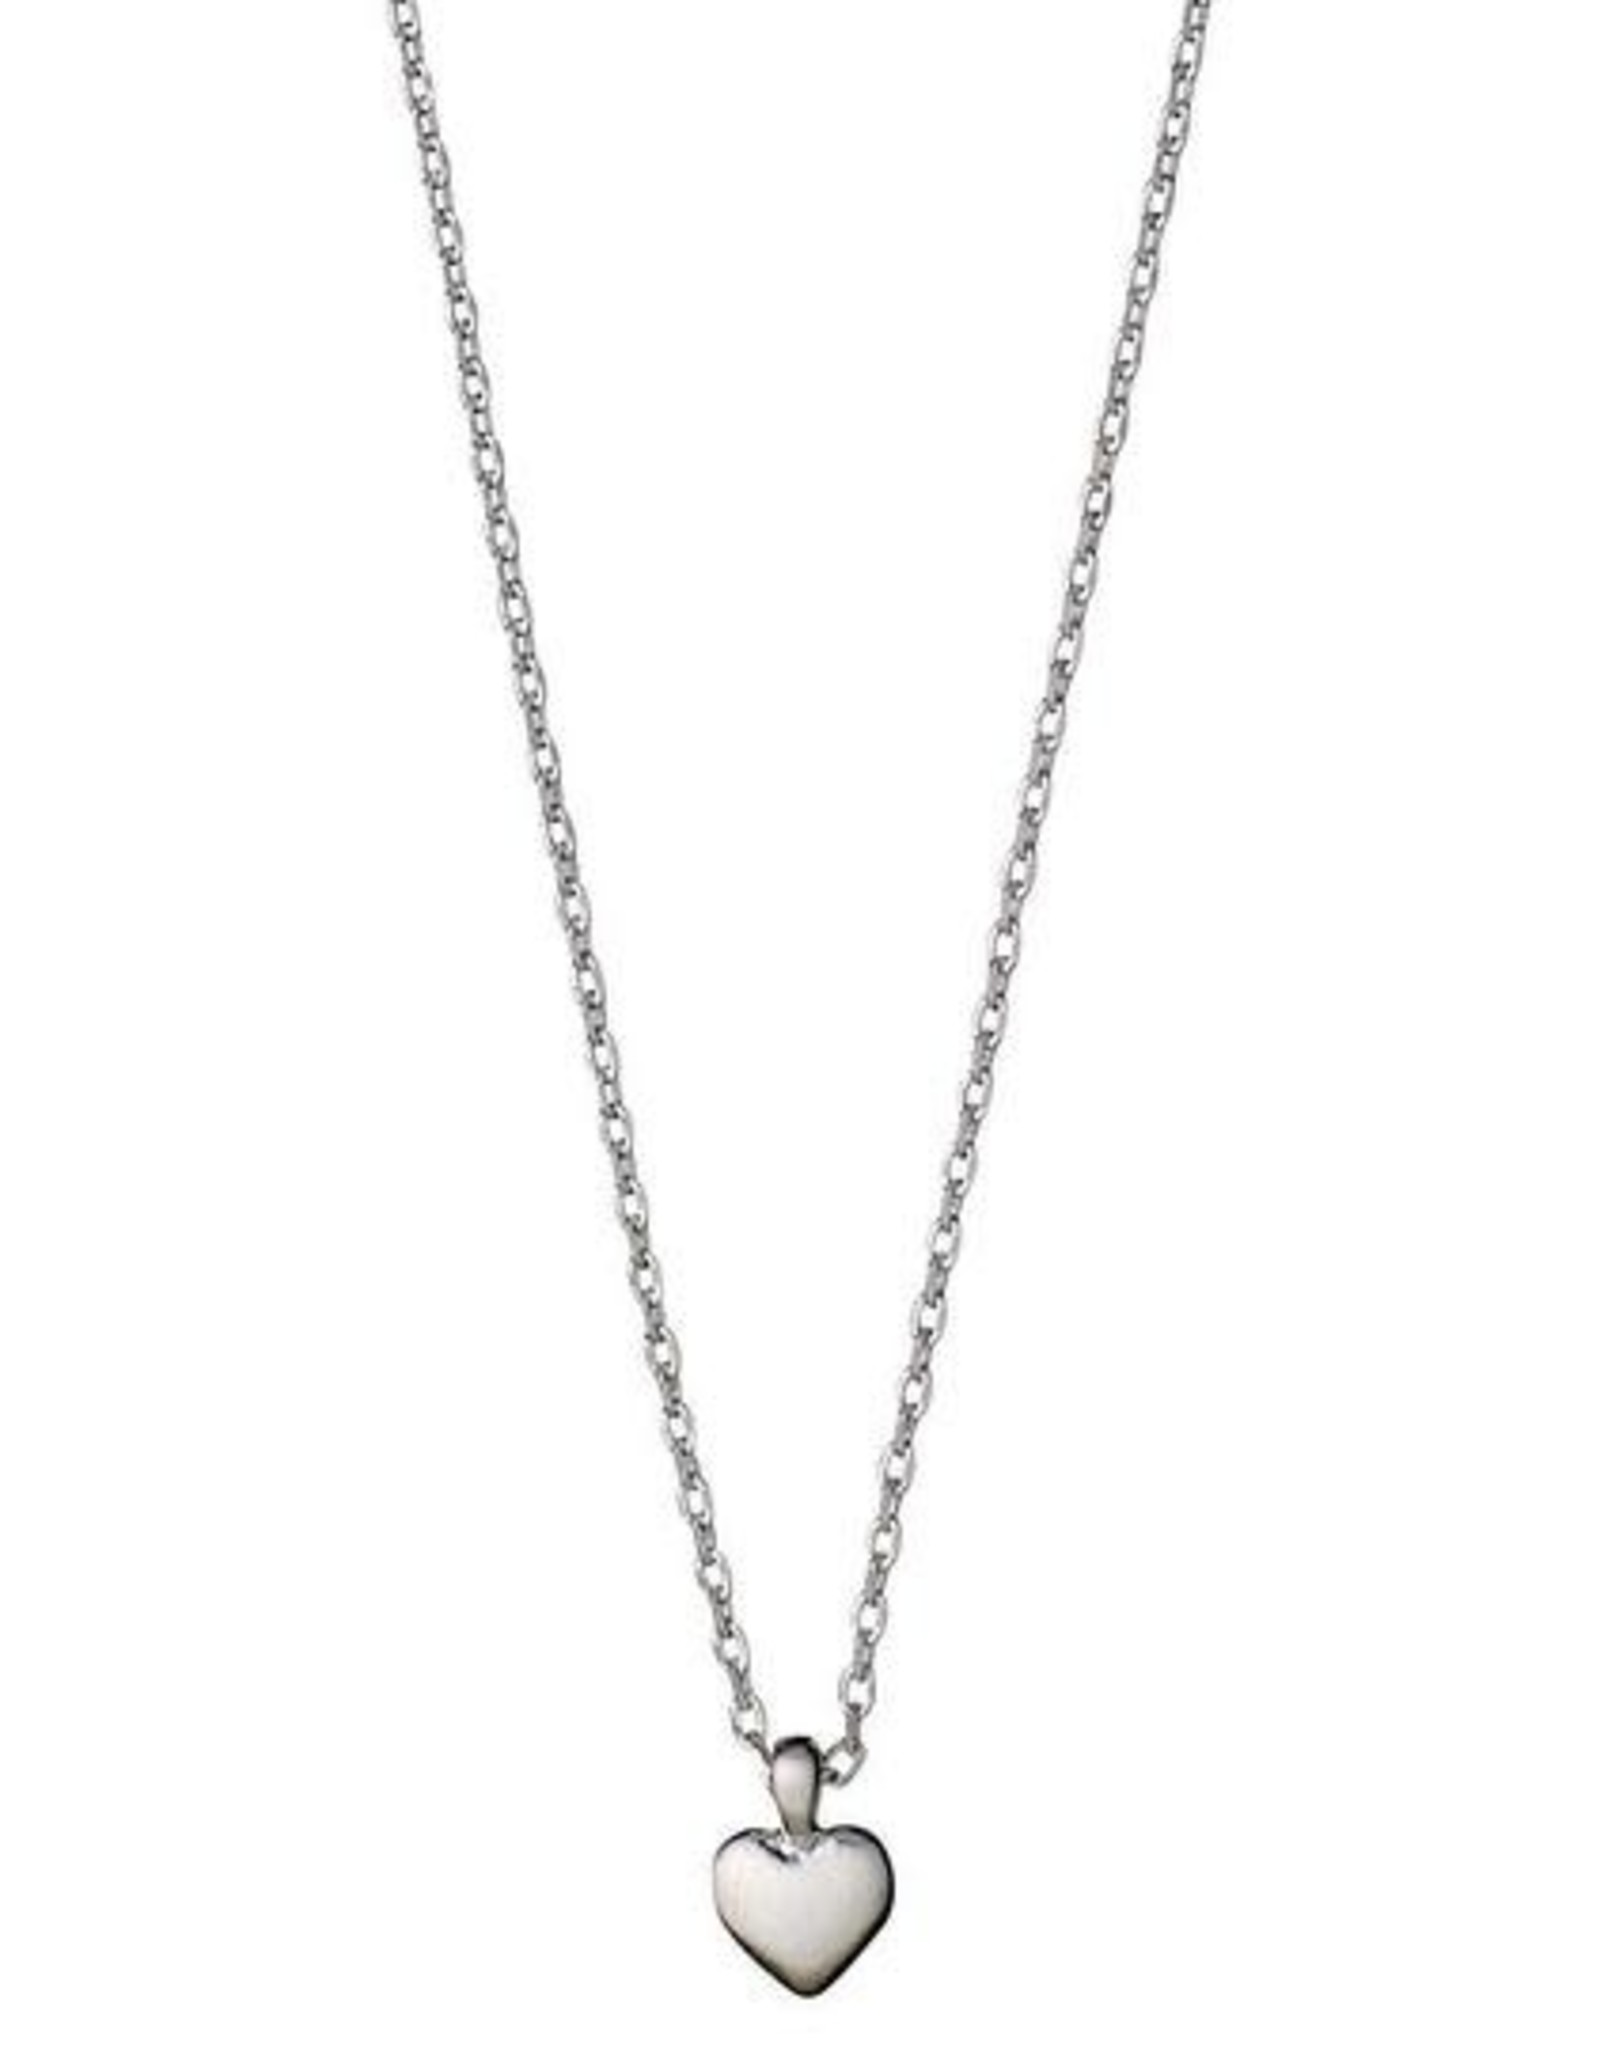 Pilgrim Sophia Heart Necklace -Plated Silver